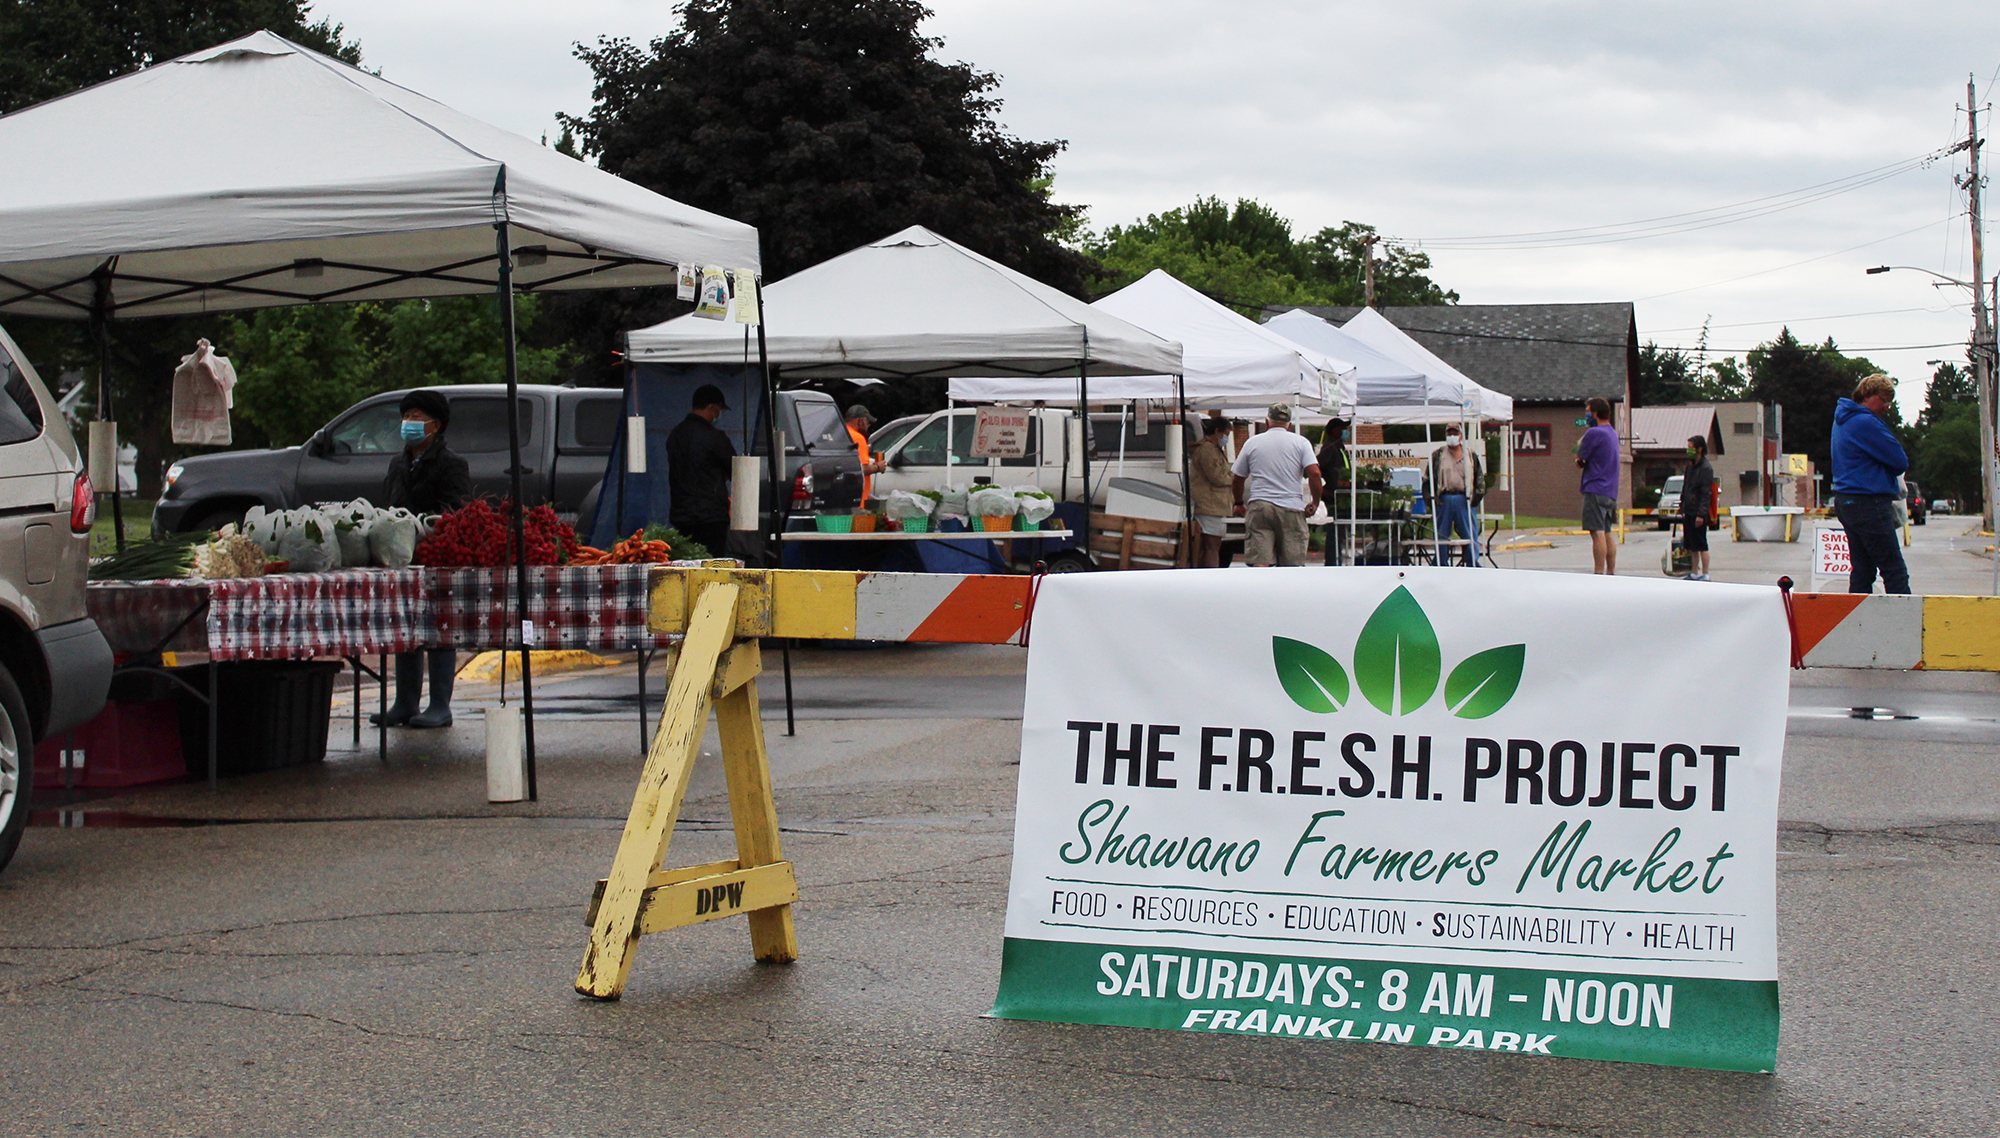 The diehards were lured out in the rains of the morning of June 20 for the first Shawano Farmers Market of the season at Franklin Park. The weekend also marked the first market under the management of The FRESH Project. The local food and nutrition advocacy group assumed the leadership from a volunteer board over the winter.David Wilhelms